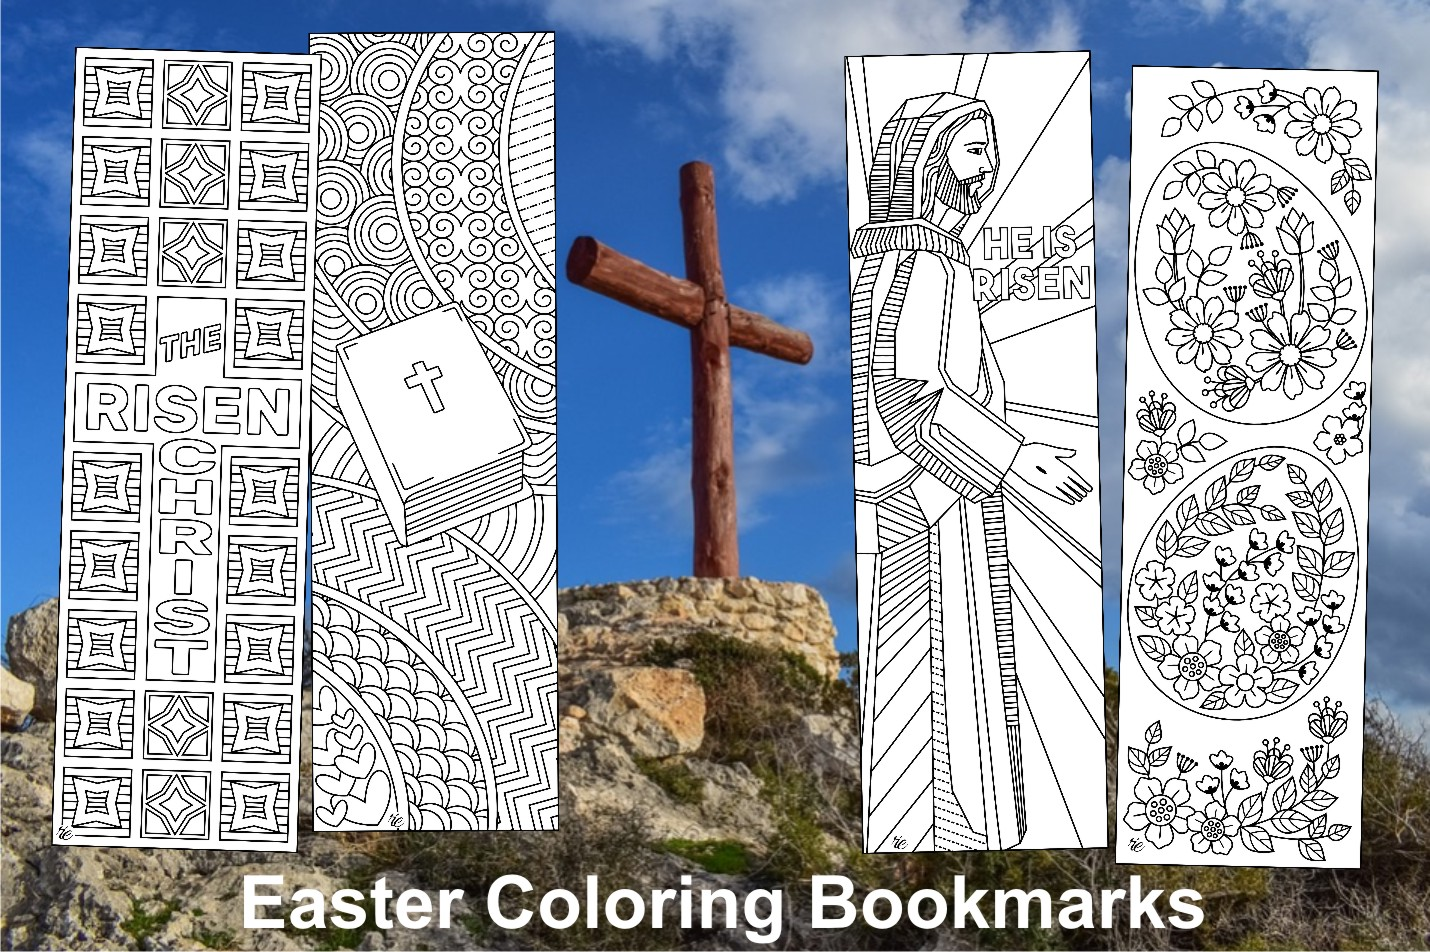 easter coloring bookmarks for kids and adults - Easter Coloring Pictures 2